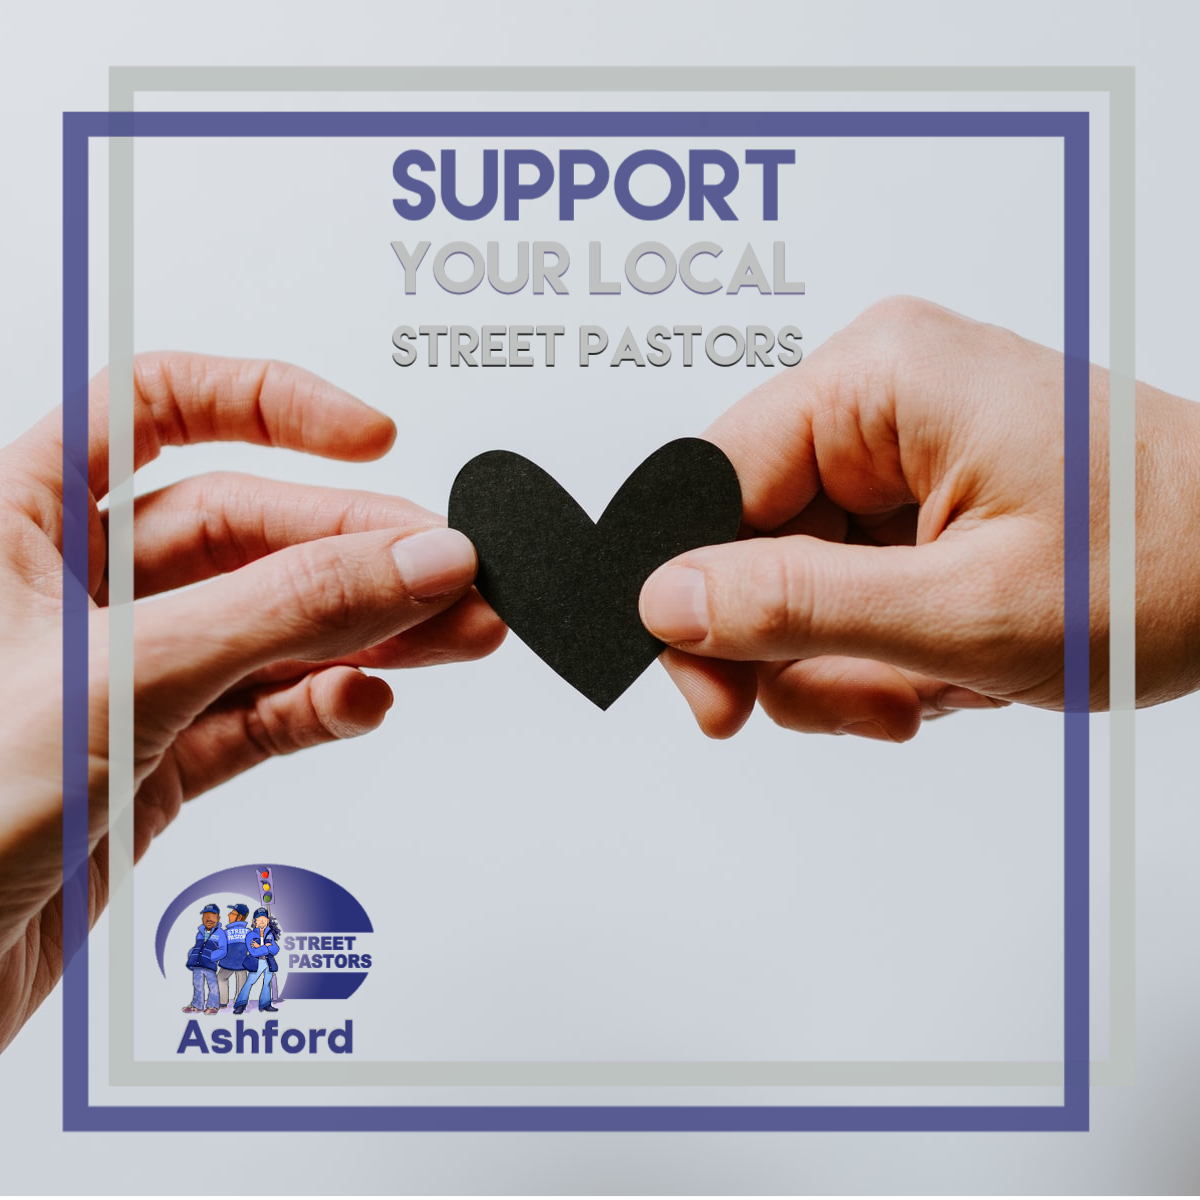 picture includes text: Support you local street pastors